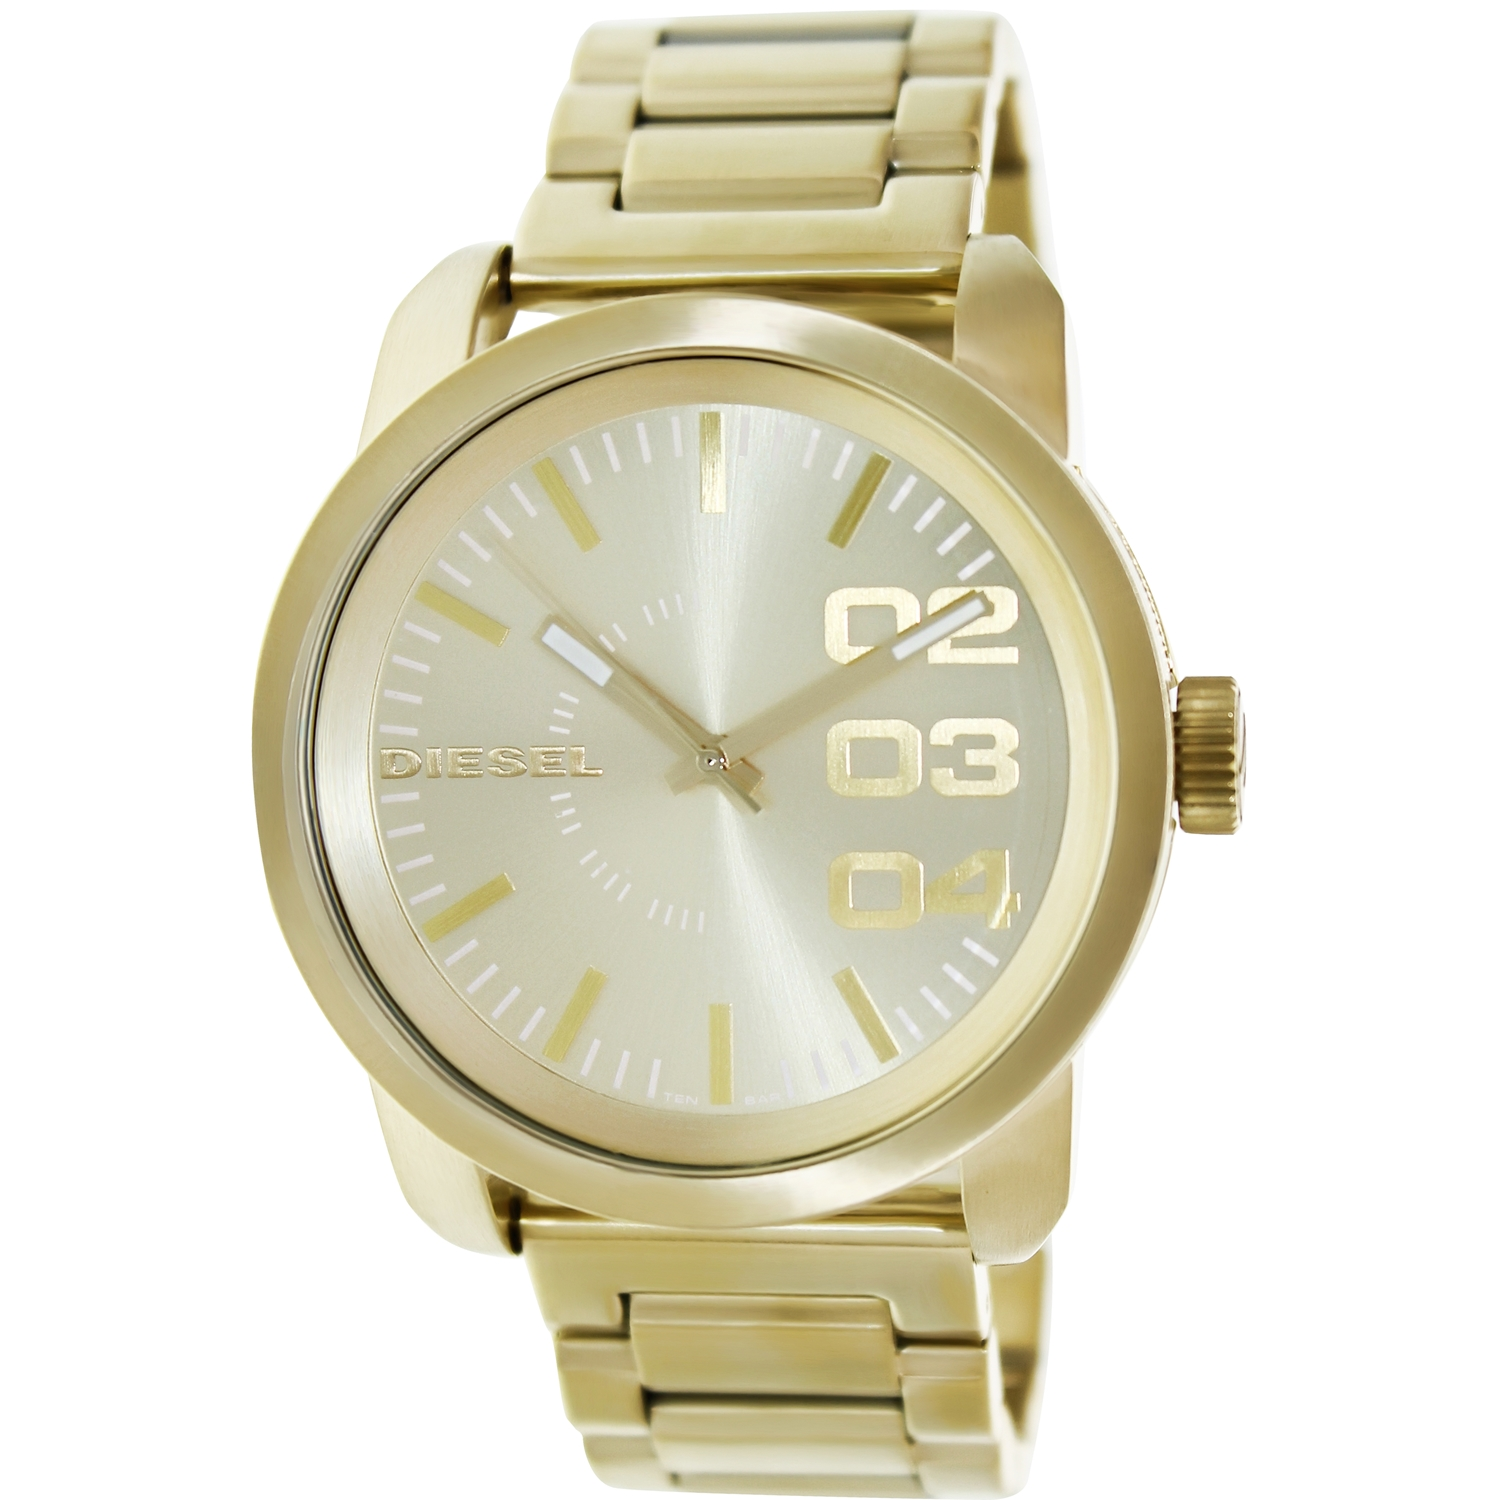 Diesel Men's DZ1466 Gold Stainless-Steel Quartz Fashion Watch